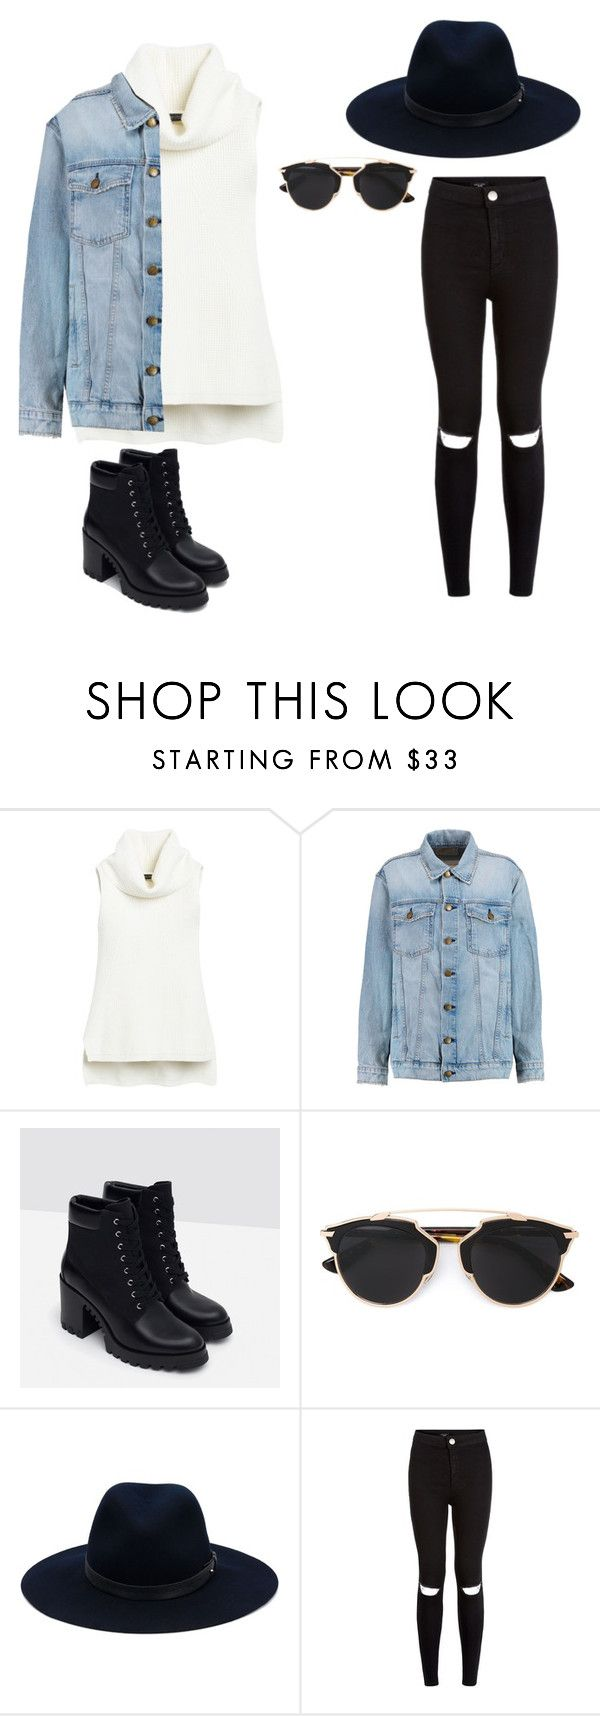 """""""Untitled #15"""" by molly-mahaffey on Polyvore featuring White House Black Market, Current/Elliott, Zara, Christian Dior, rag & bone, women's clothing, women, female, woman and misses"""